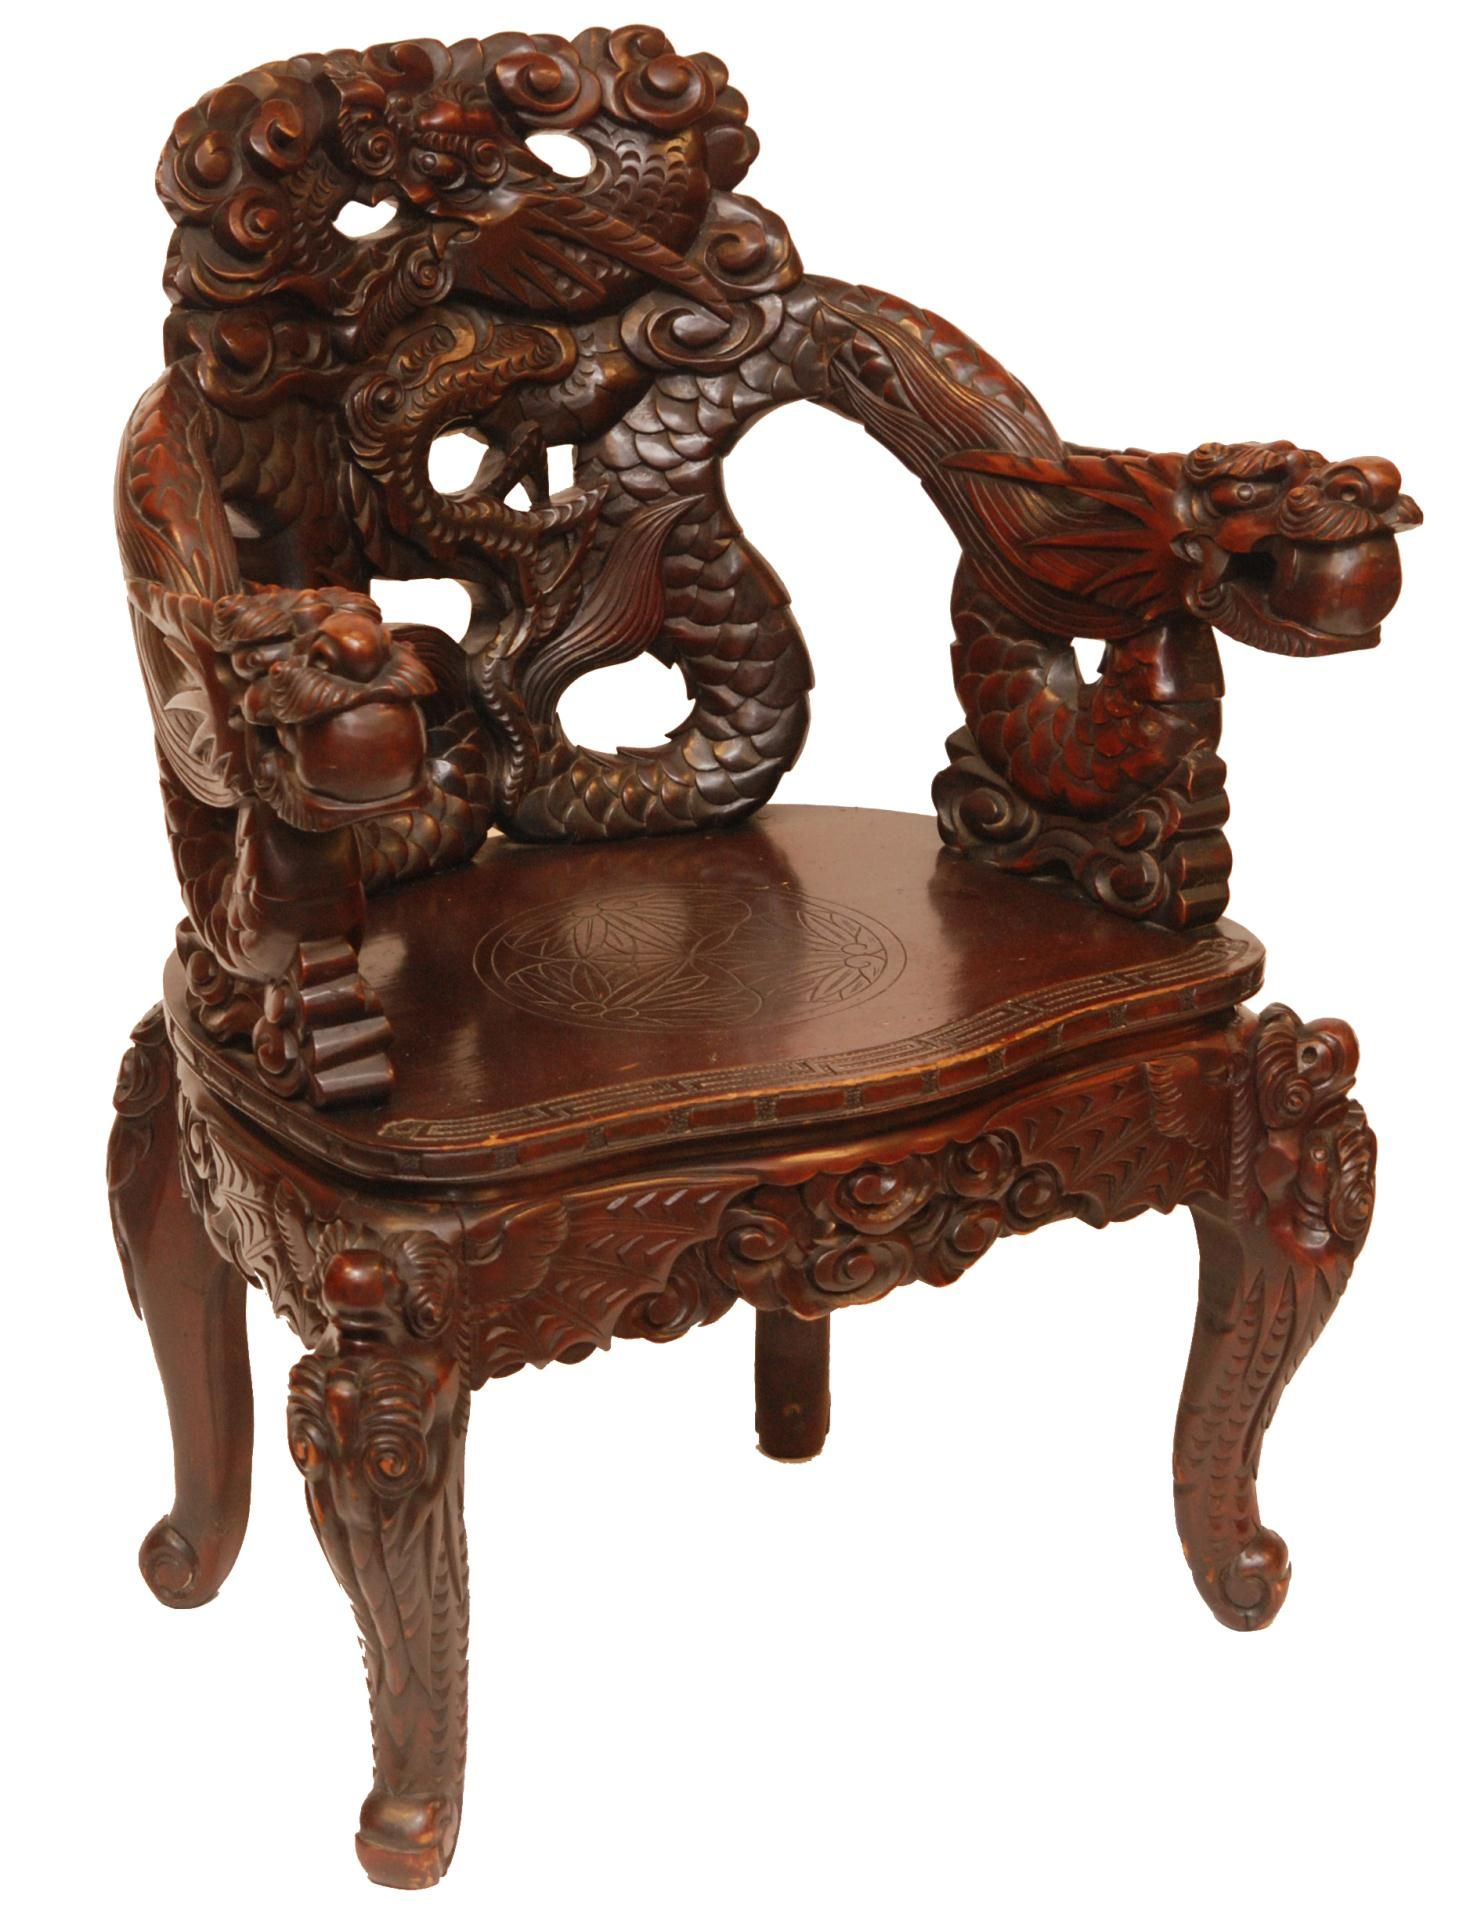 Dragon Chair Chinese Wood Carvings 557 Chinese Carved Wooden Dragons Chair